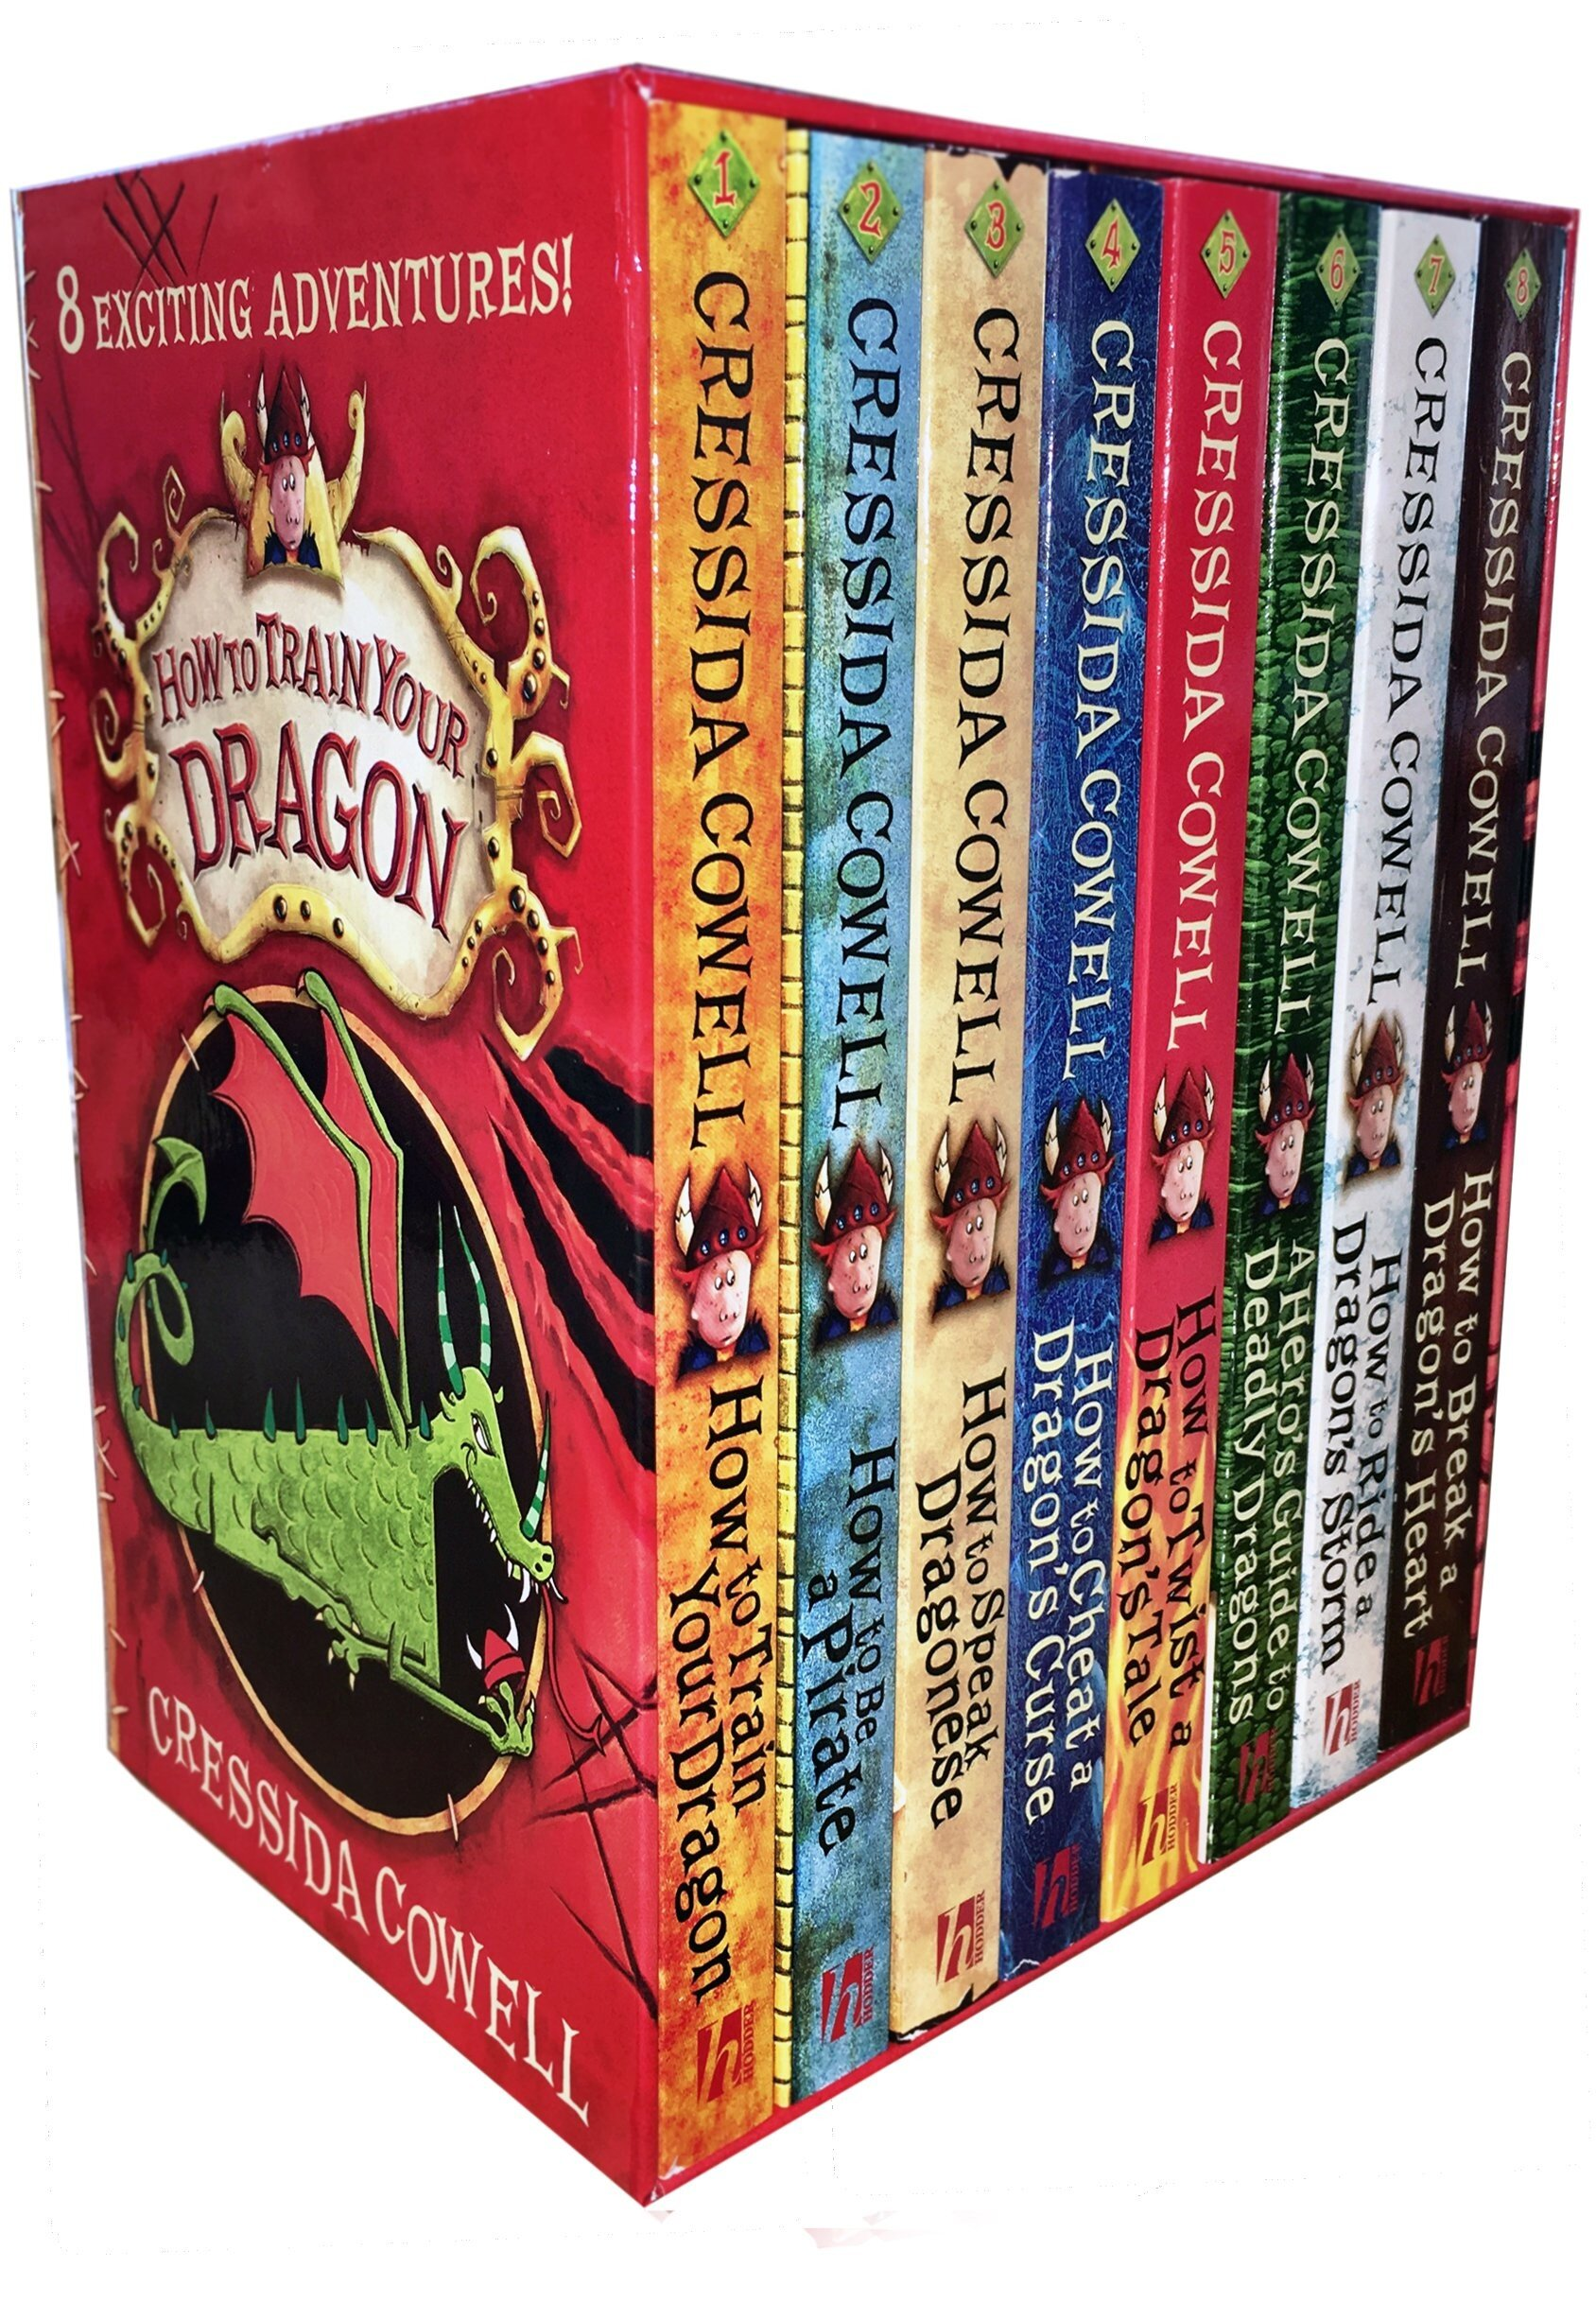 Hiccup How to Train Your Dragon Collection 8 Books Box Gifts Set Cressida Cowell